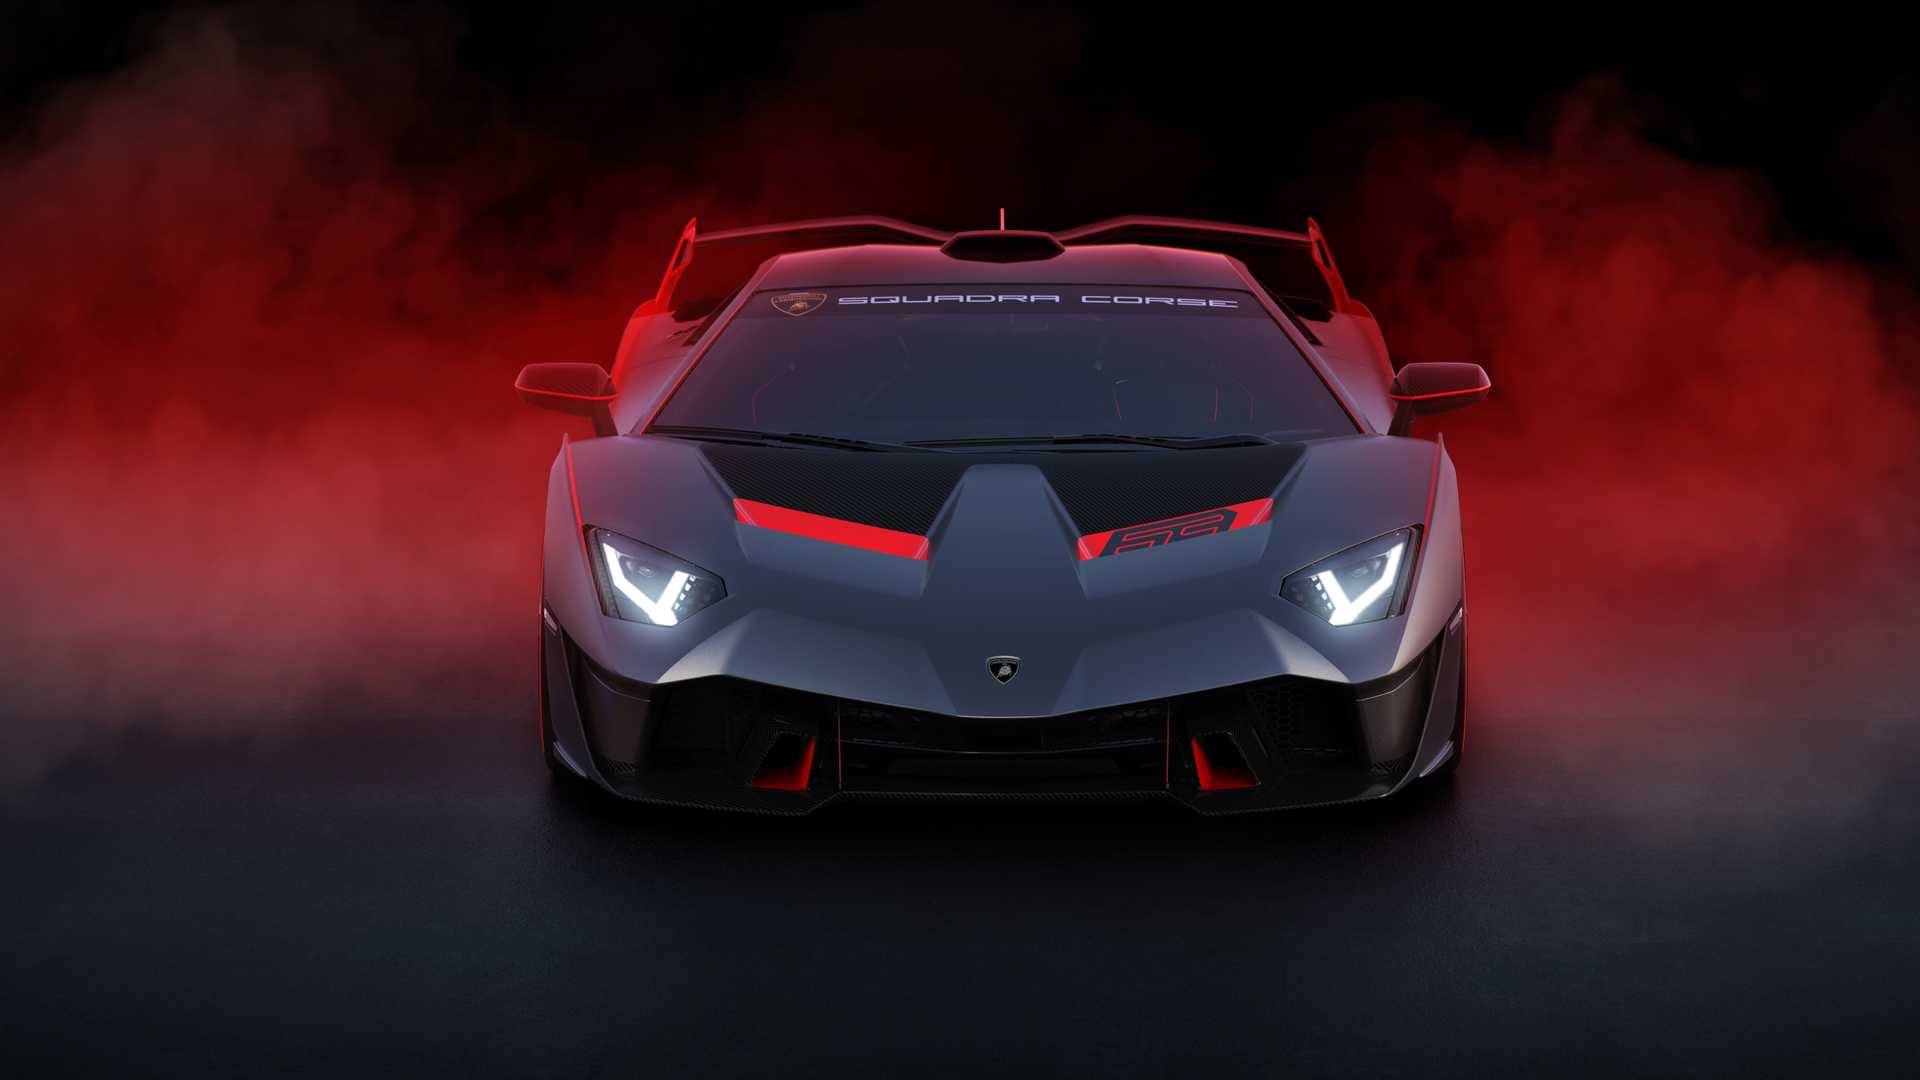 53 The Best Lamborghini 2020 Models Configurations